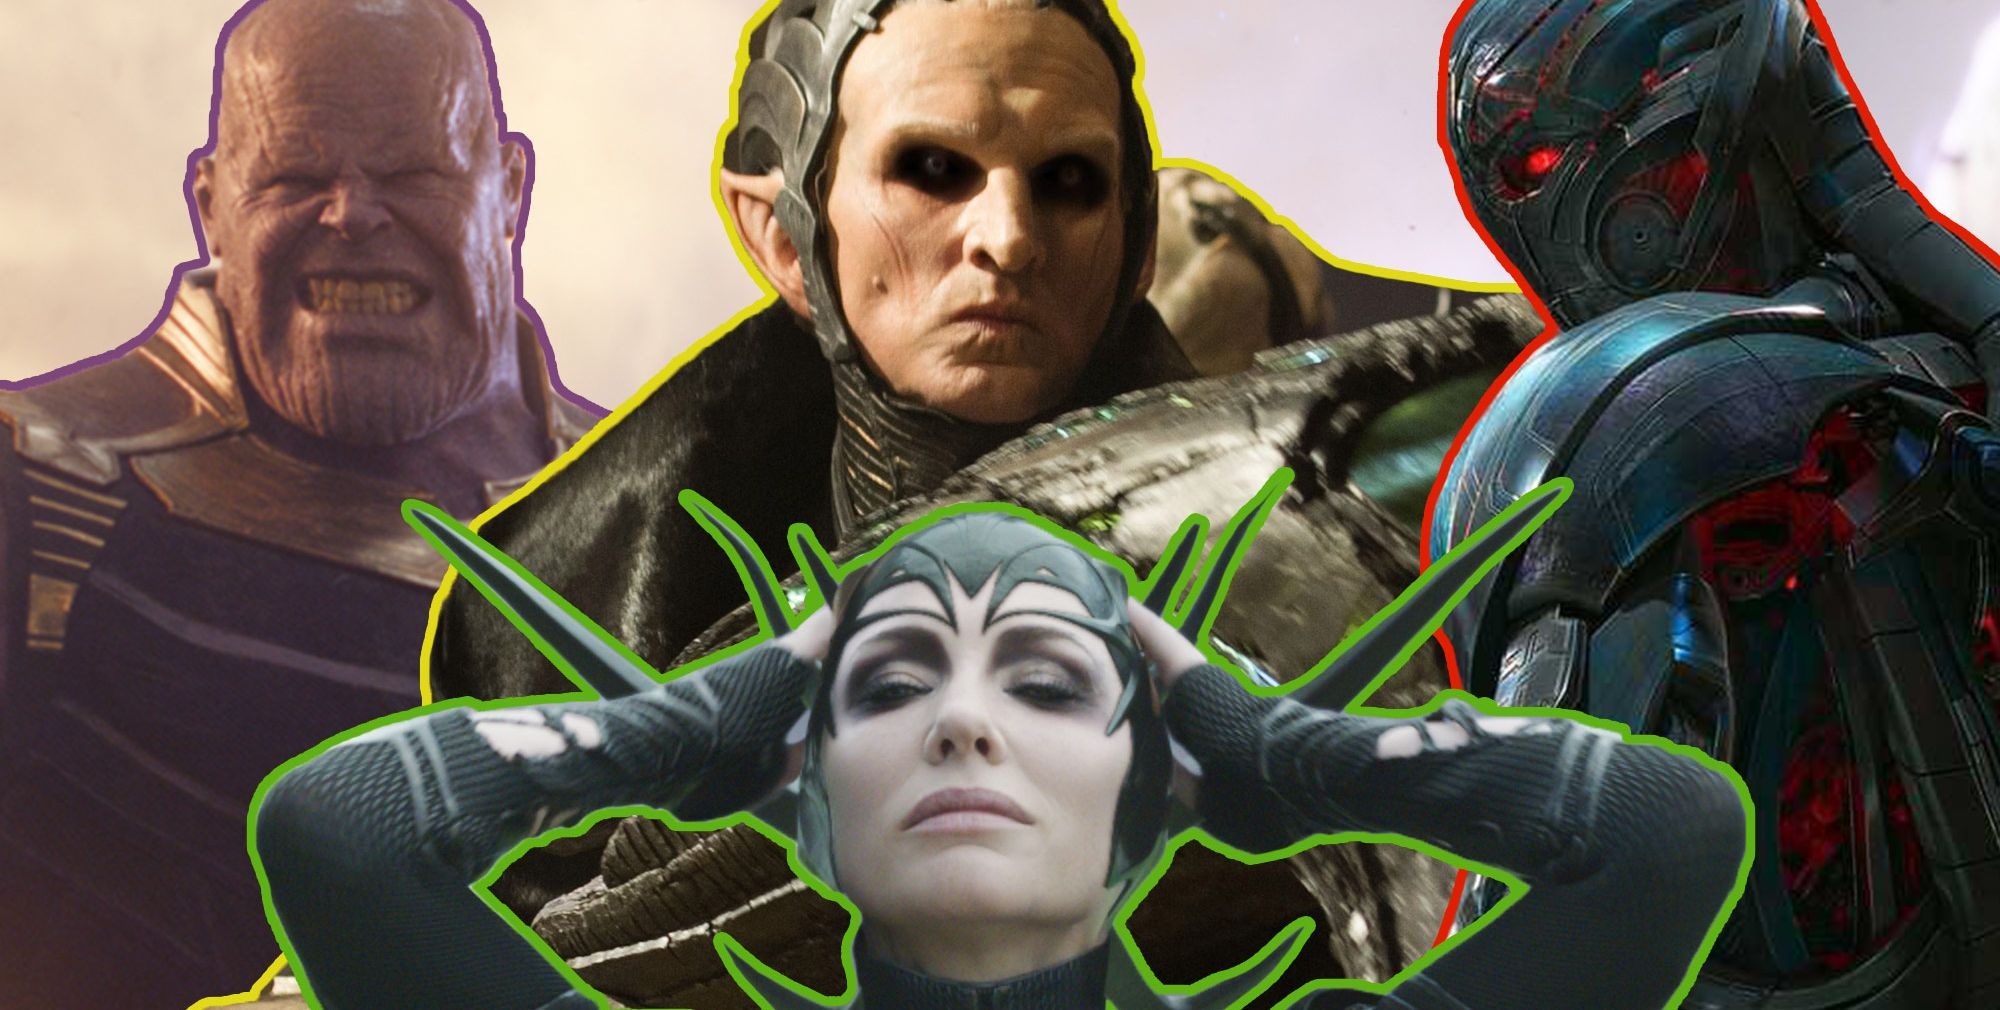 Marvel avengers villains, Thanos, Malekith, Hela, Ultron